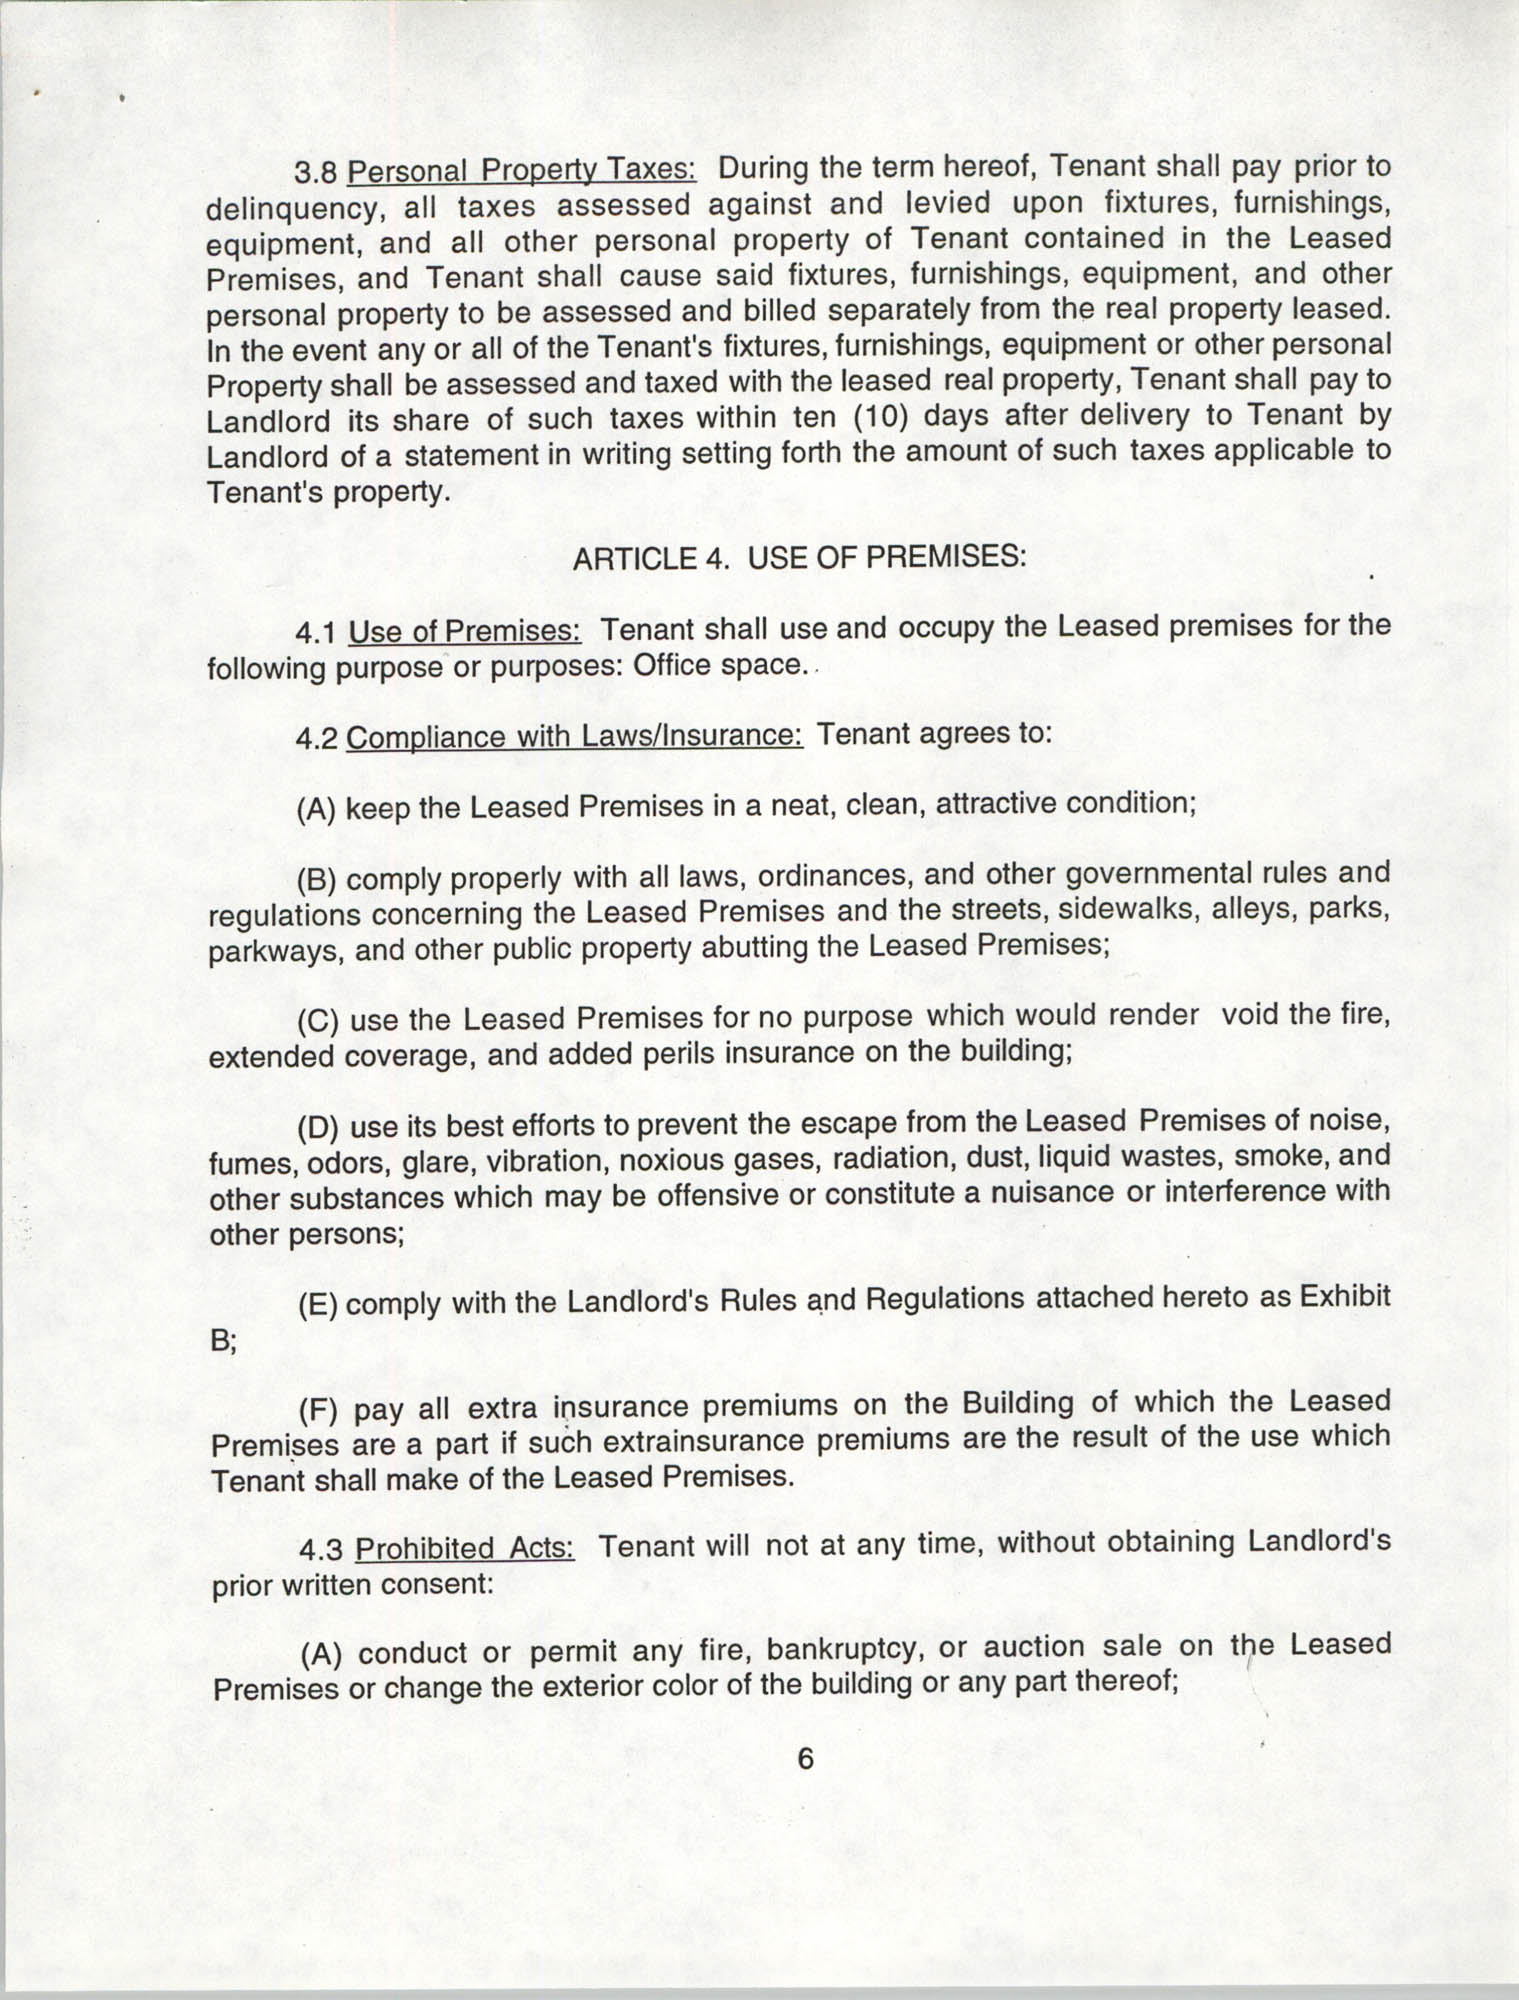 Charleston Branch of the NAACP Leasing Agreement, July 1994 to June 1995, Page 6